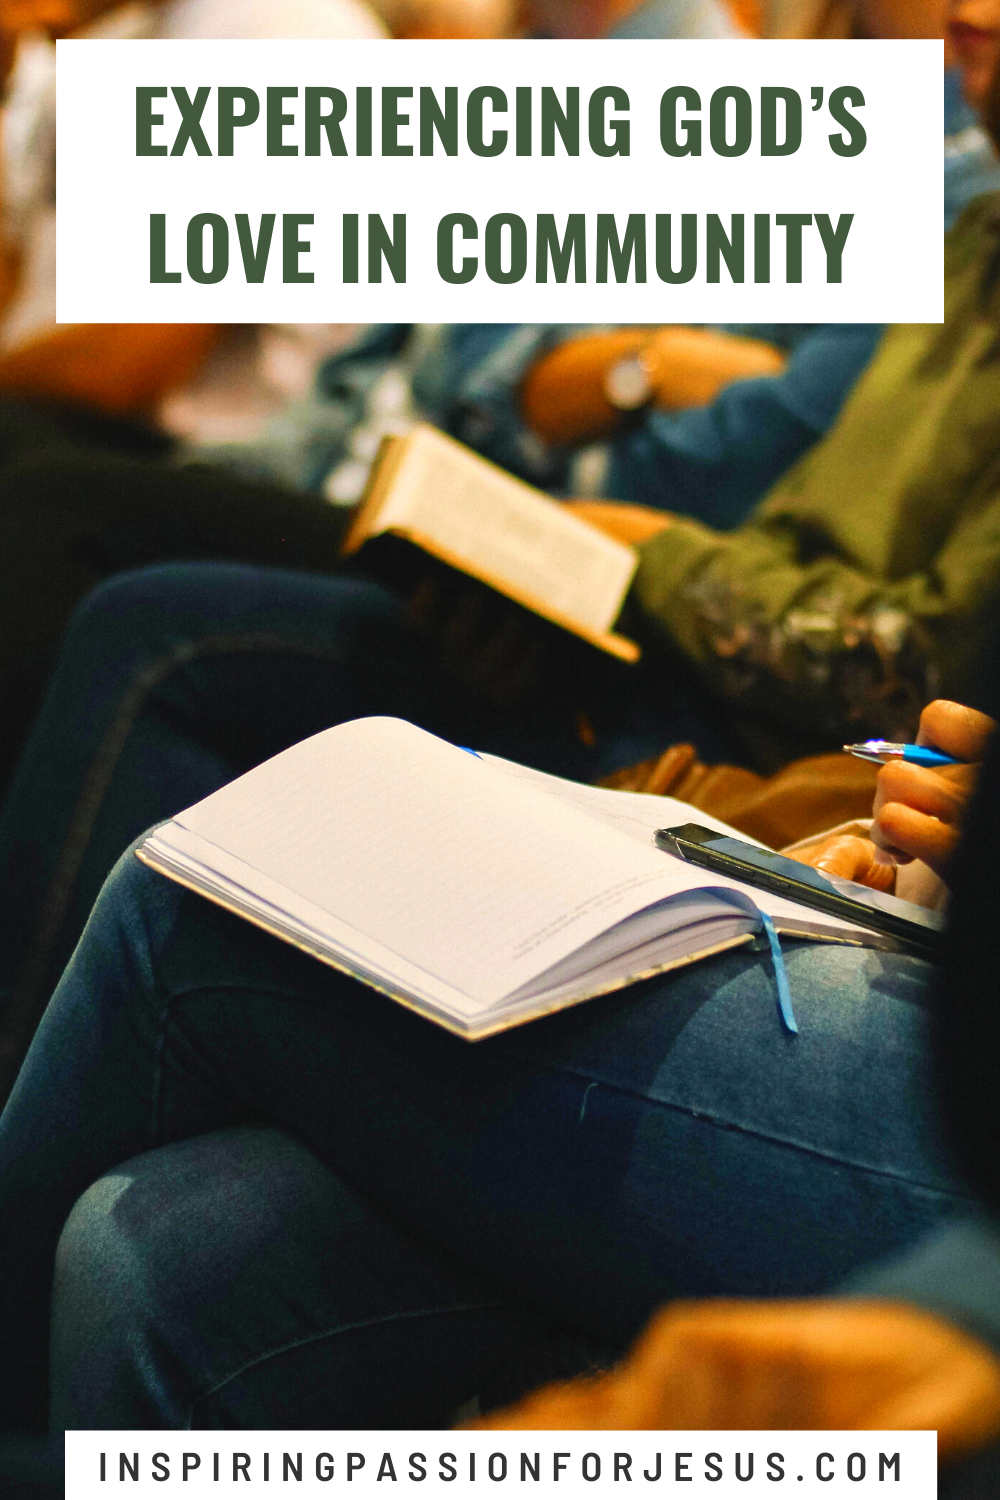 Experiencing God's Love in Community